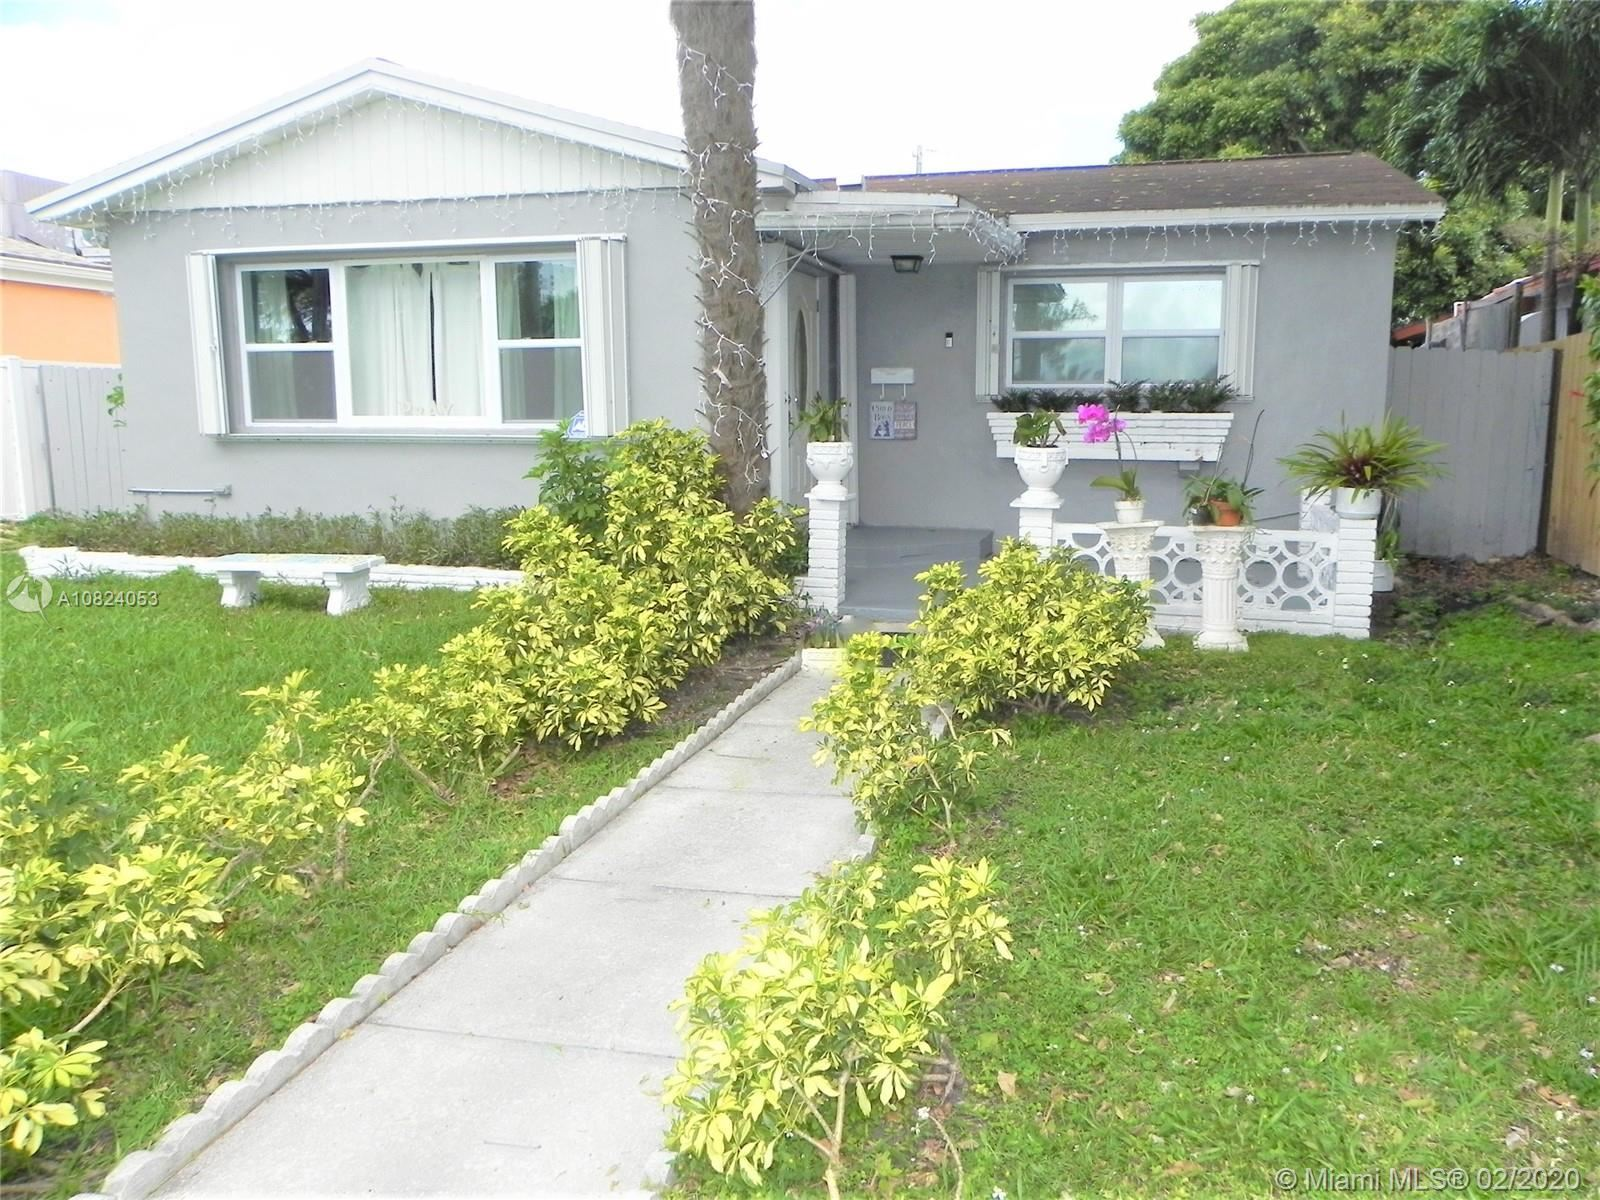 Photo 1 of Listing MLS a10824053 in 1531 Johnson St Hollywood FL 33020